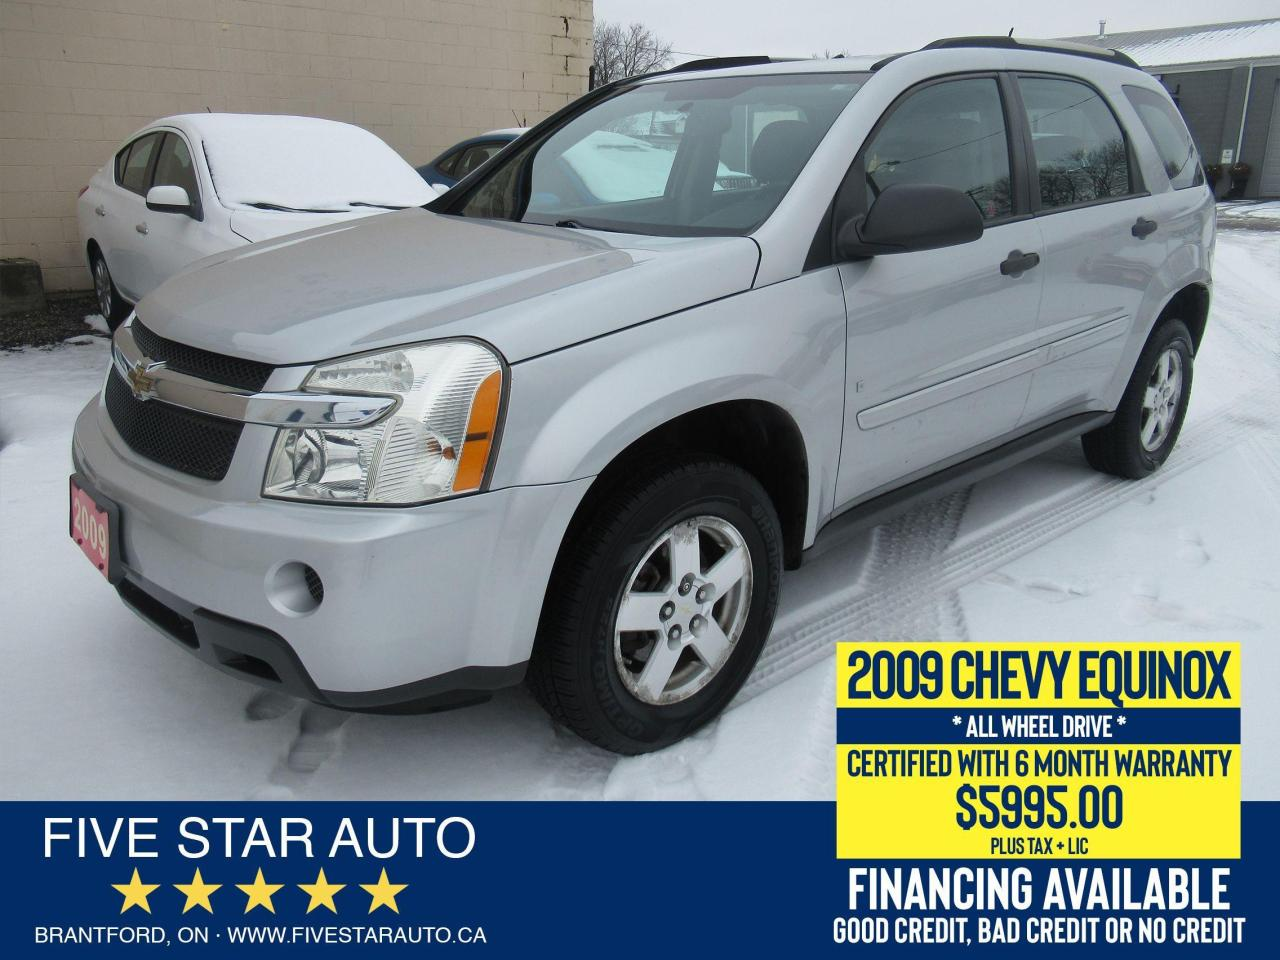 2009 Chevrolet Equinox LS AWD - Certified w/ 6 Month Warranty